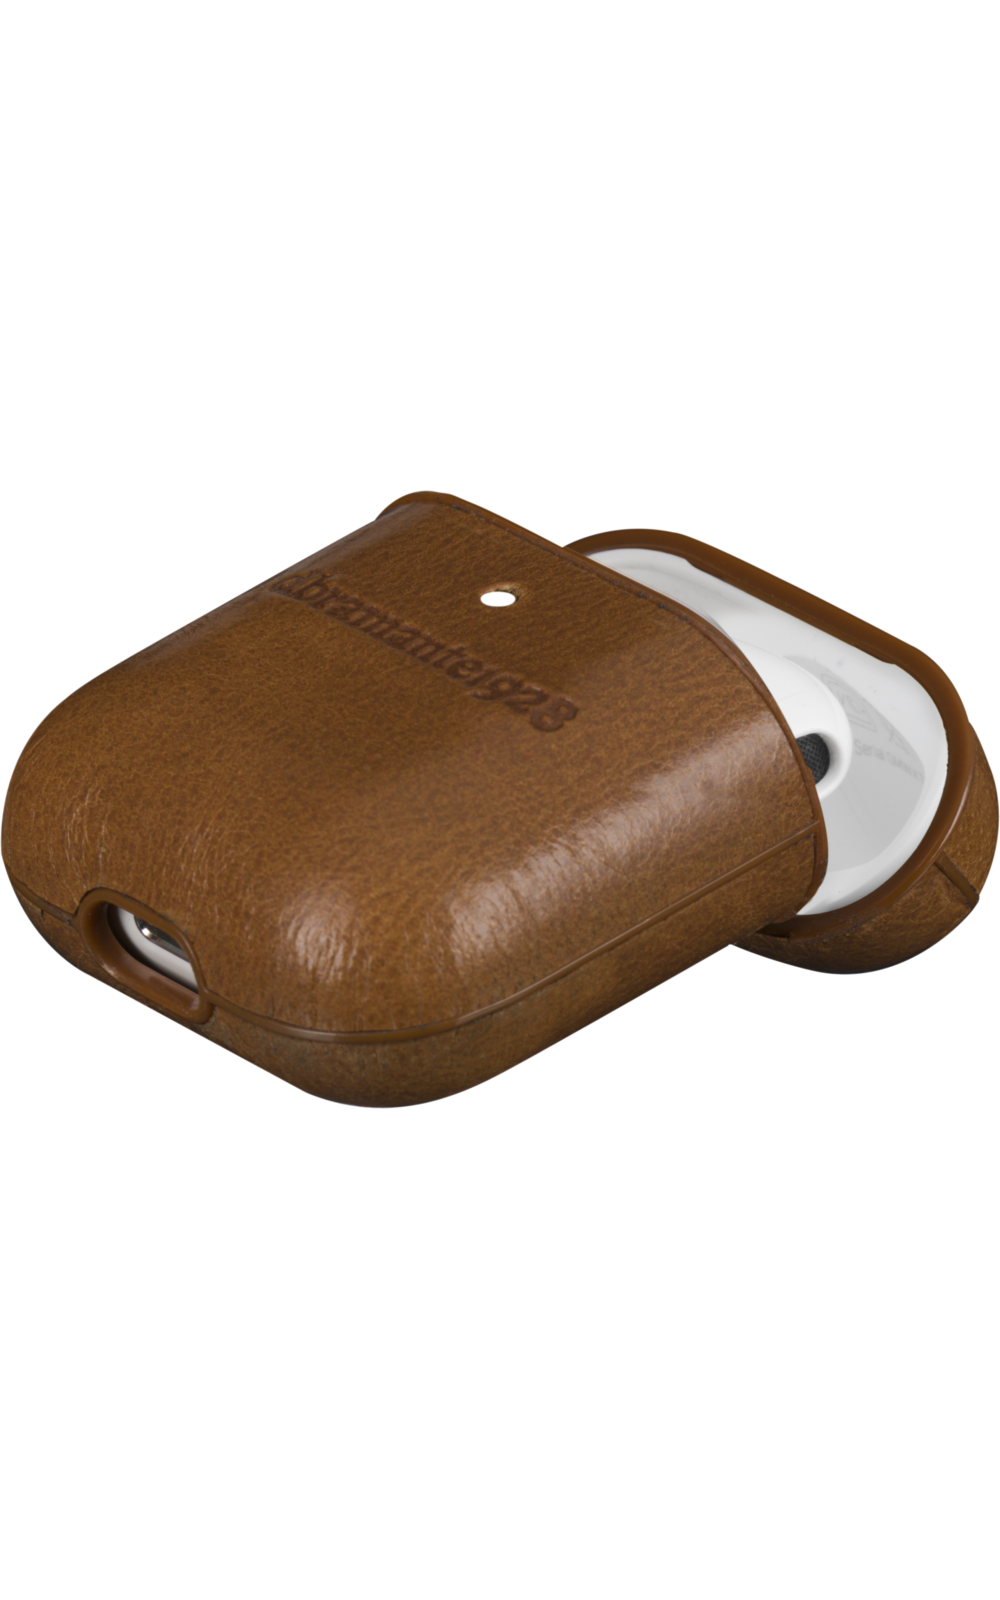 dbramante1928 full-grain leather AirPods Case